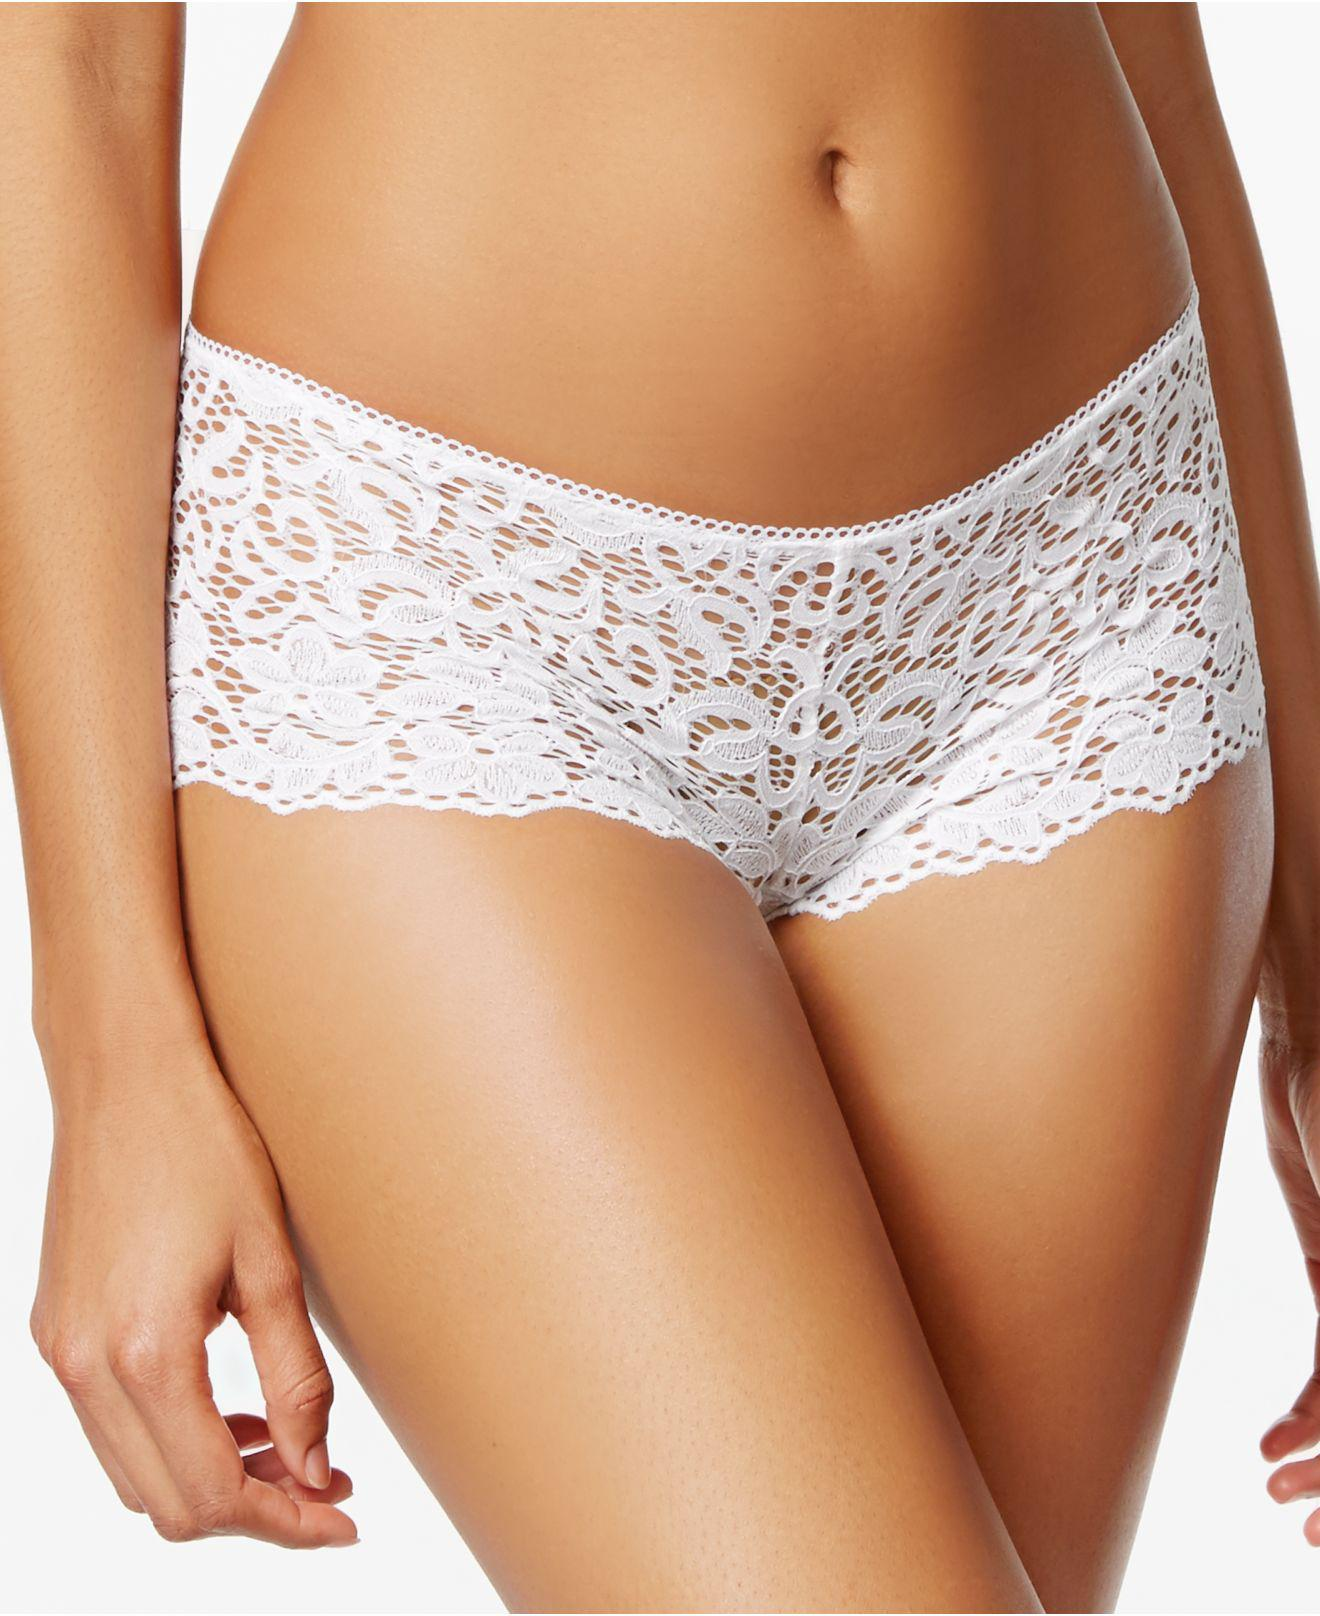 41395fed45c5d Lyst - DKNY Classic Lace Unlined Demi Bra Dk4008 in White - Save 55%